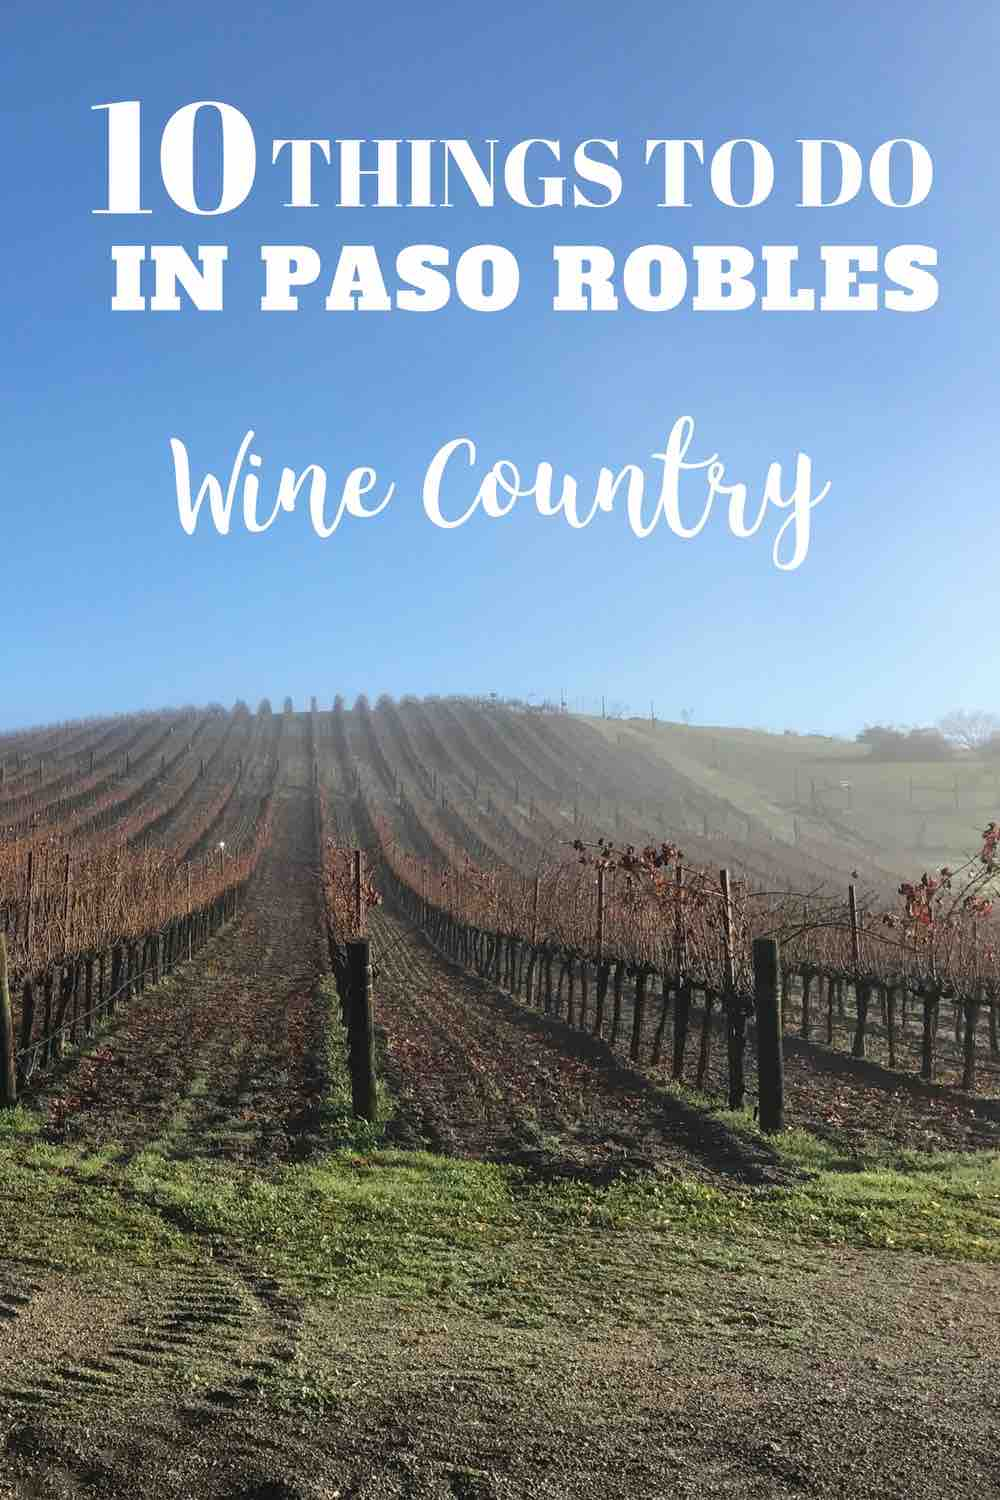 Paso Robles | Where to stay in Paso Robles | Trip Report in Paso Robles | What to do in Paso Robles